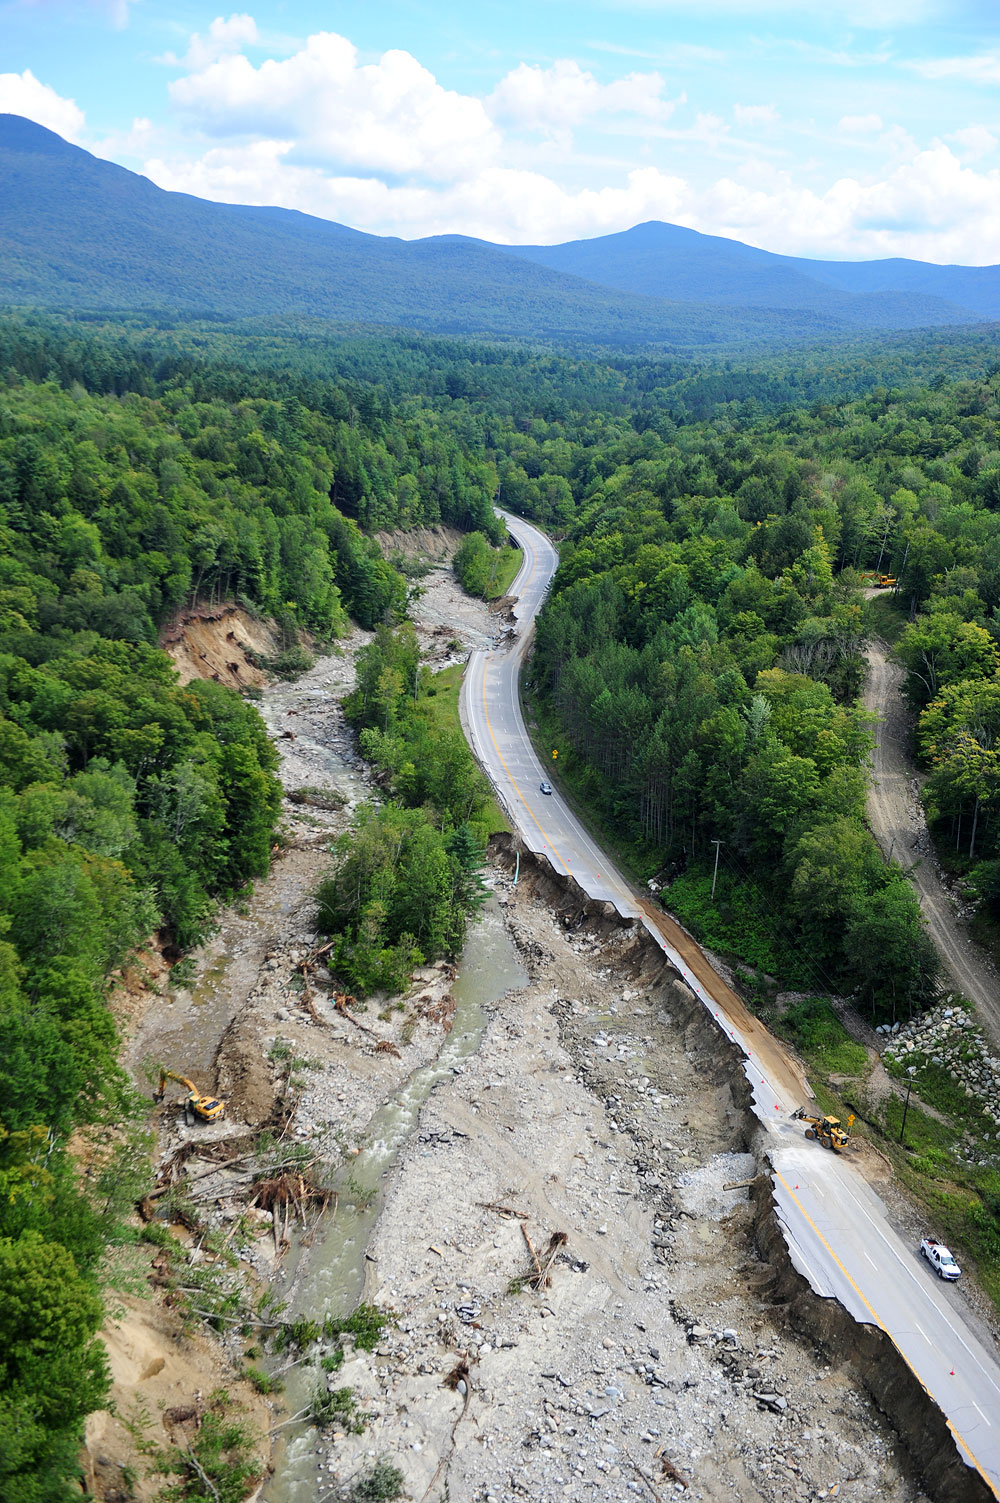 Route 4 between Killington, VT and Mendon, VT completely destroyed. Photo credit: Lars Gange & Mansfield Heliflight